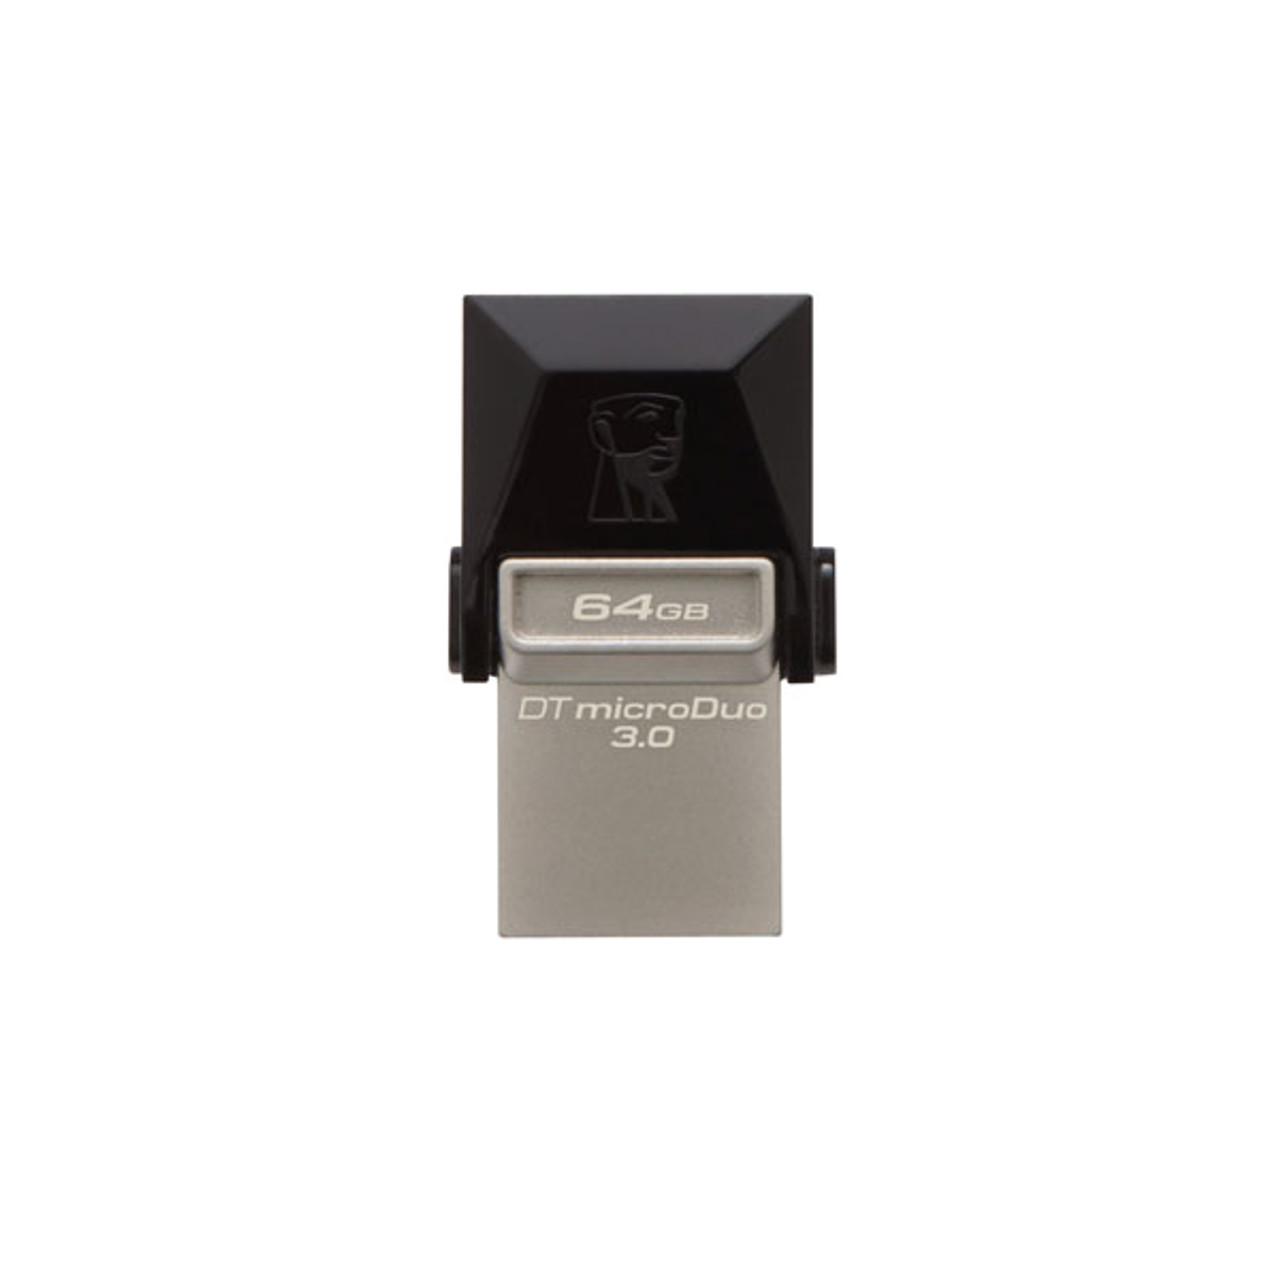 Image for Kingston DataTraveler microDuo 64GB USB 3.0 Flash Drive with micro USB OTG CX Computer Superstore